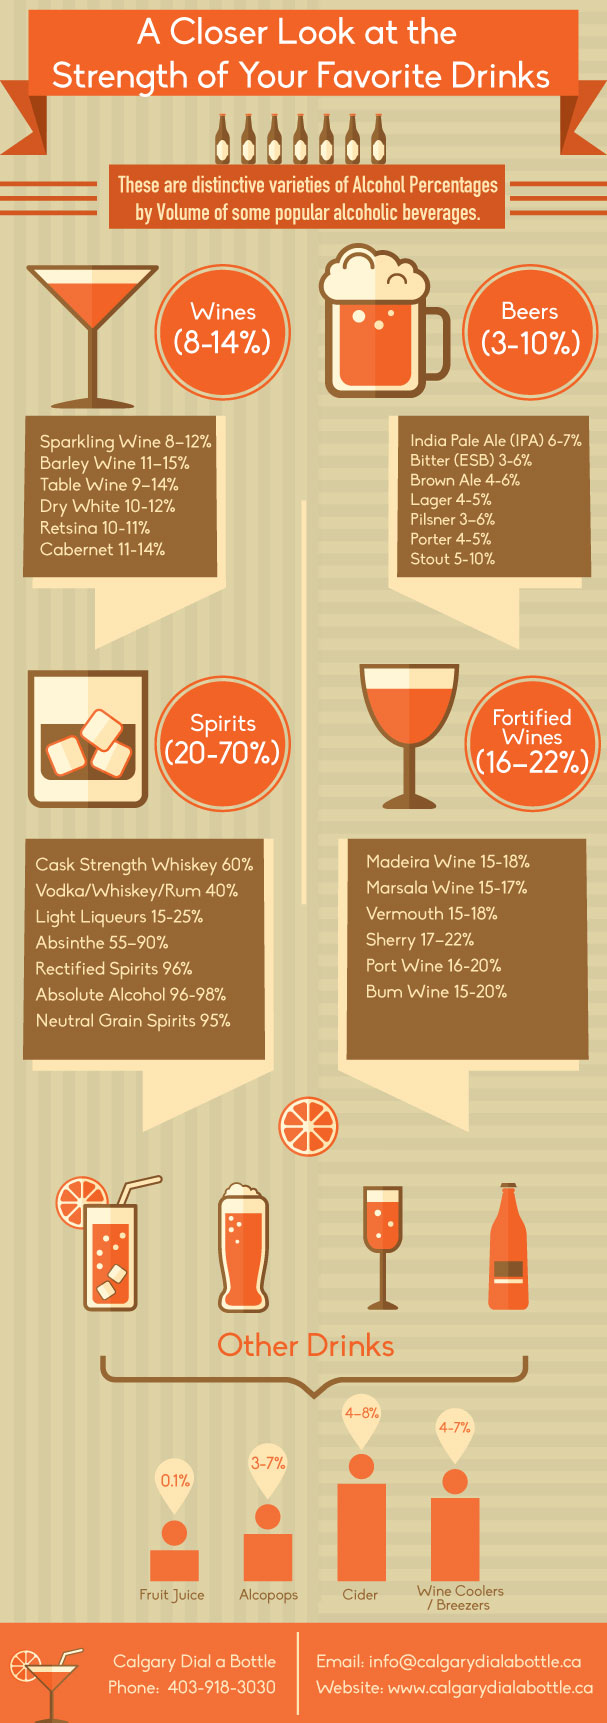 A Closer Look at the Strength of Your Favorite Drinks